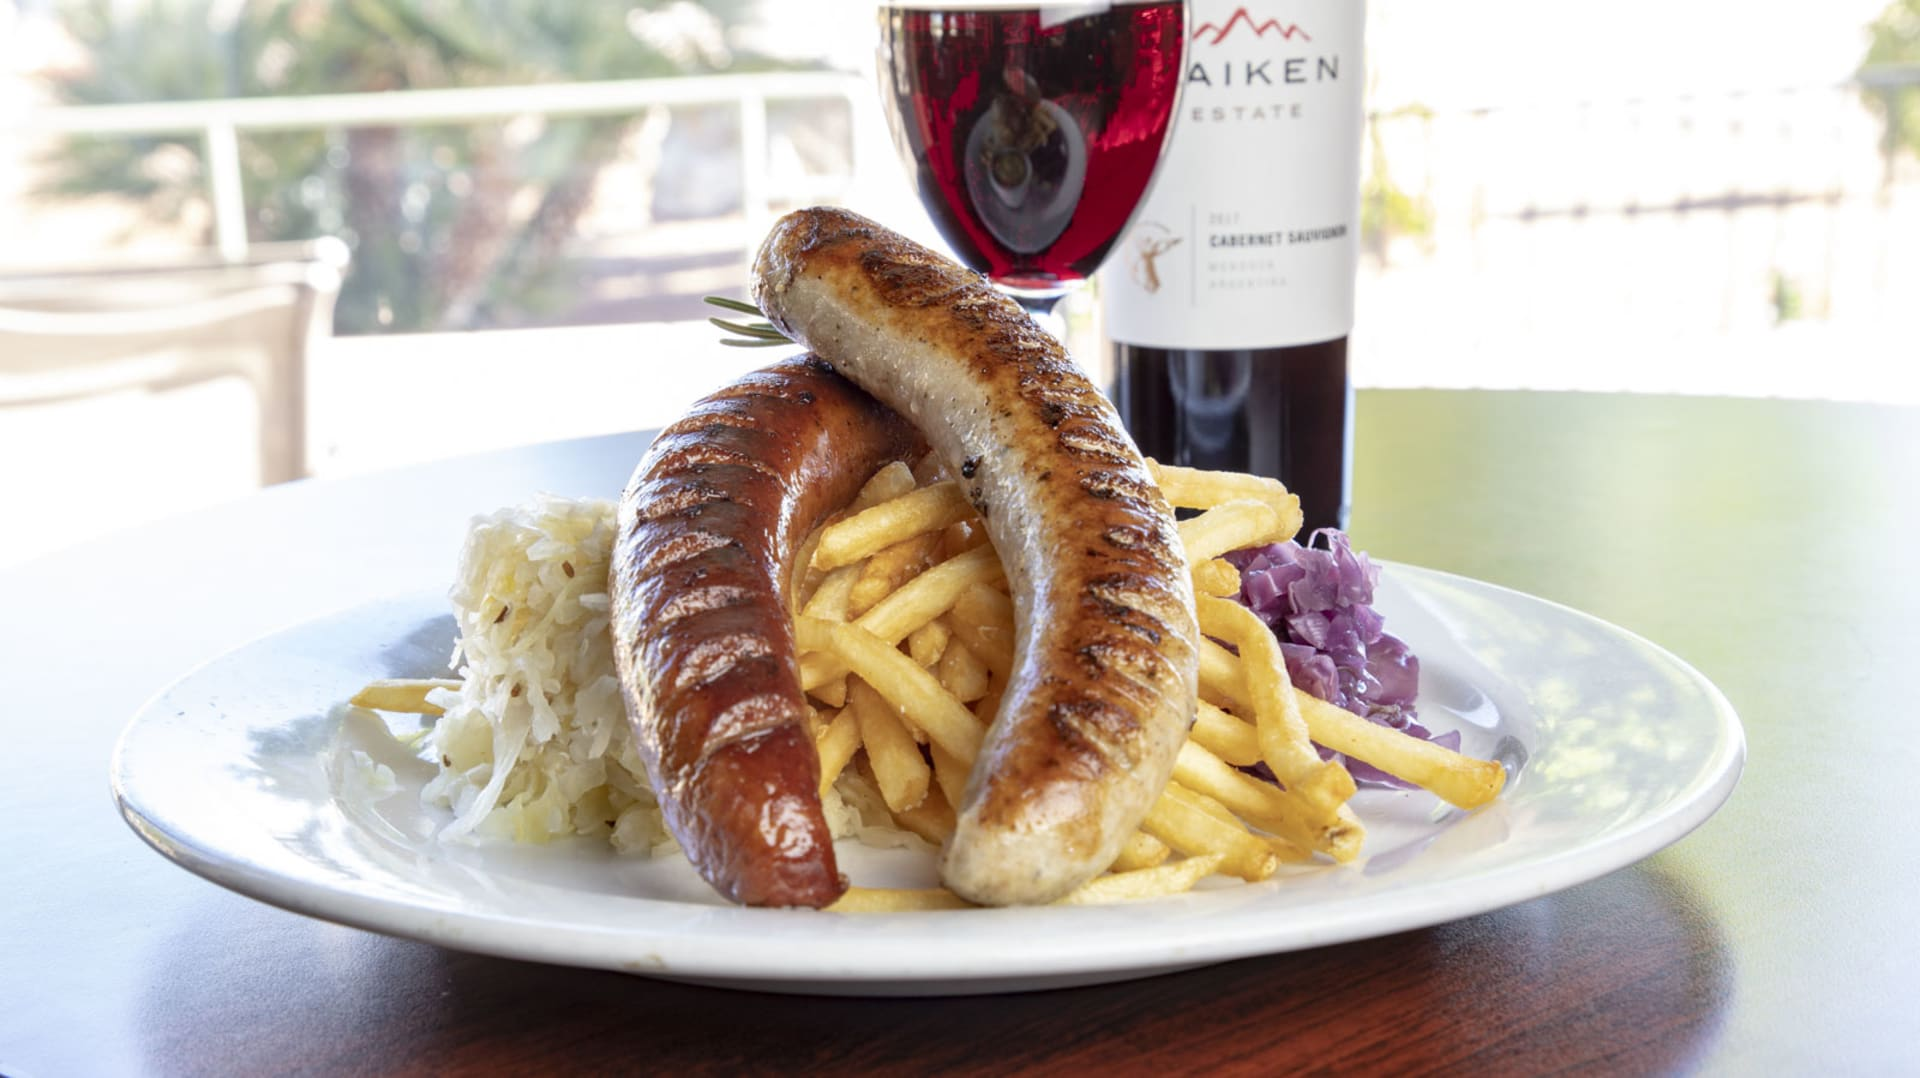 sausage and fries